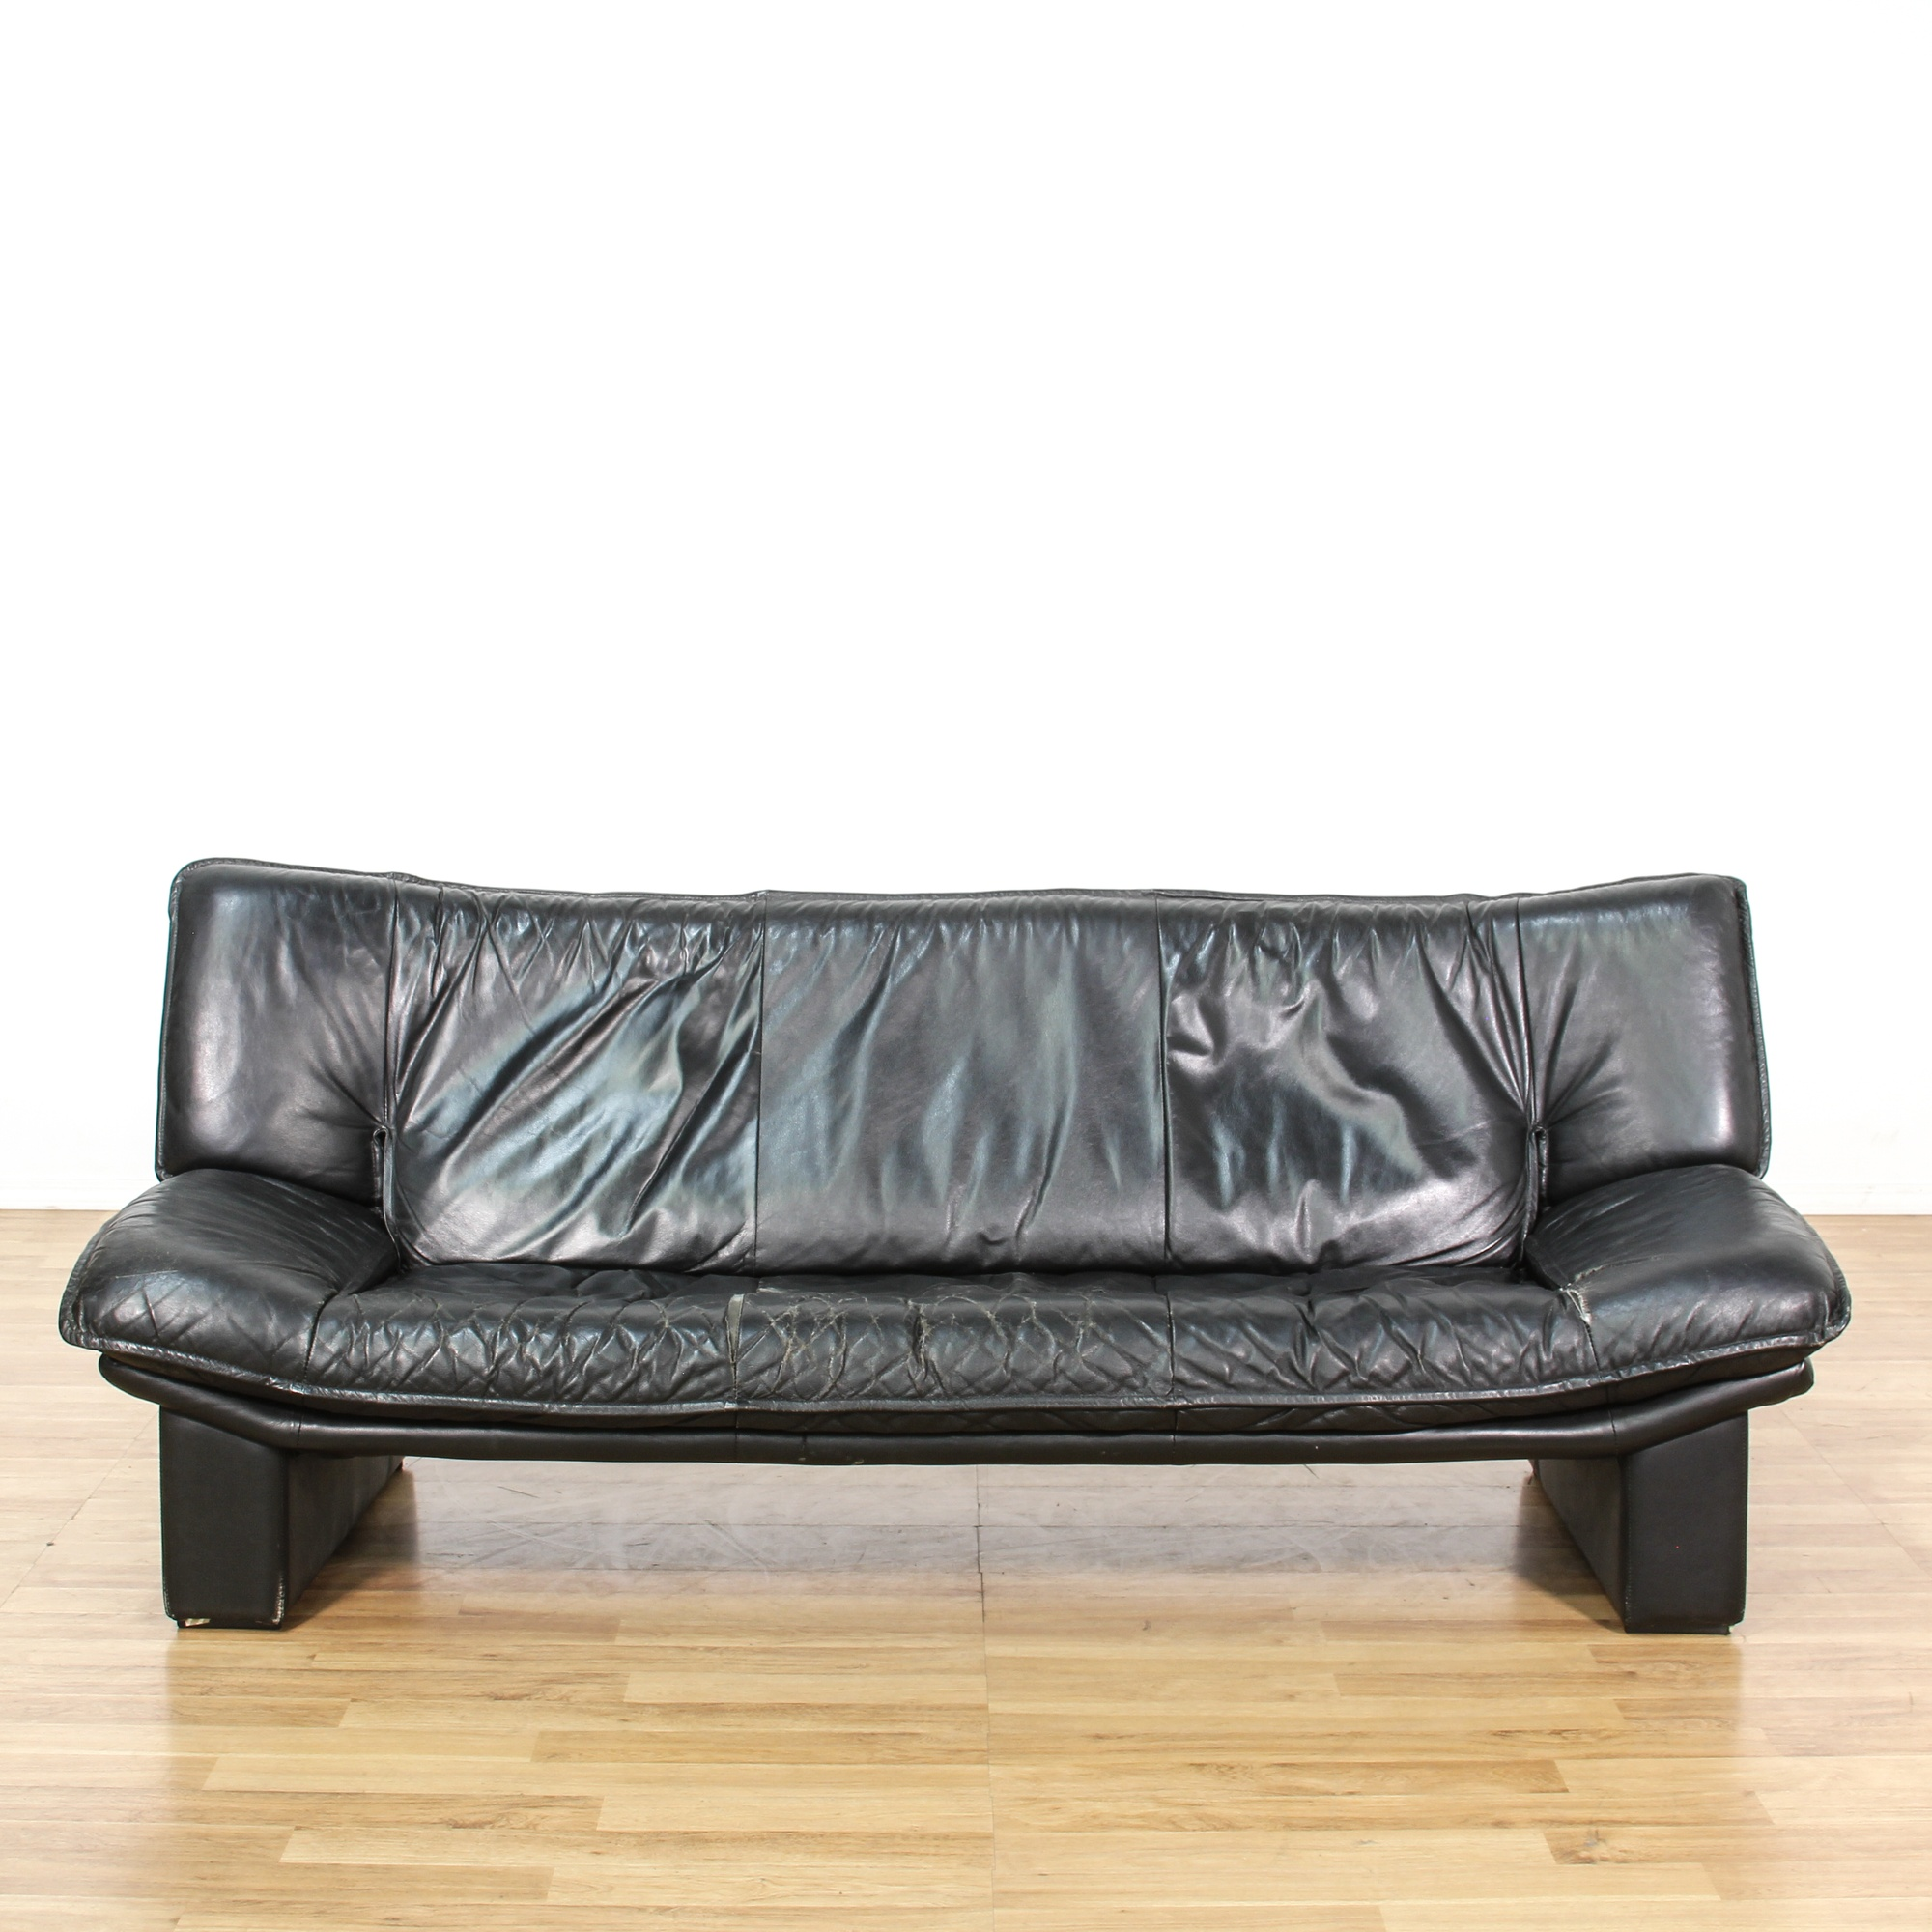 Leather Sofas In Los Angeles: Contemporary Black Leather Lounge Sofa